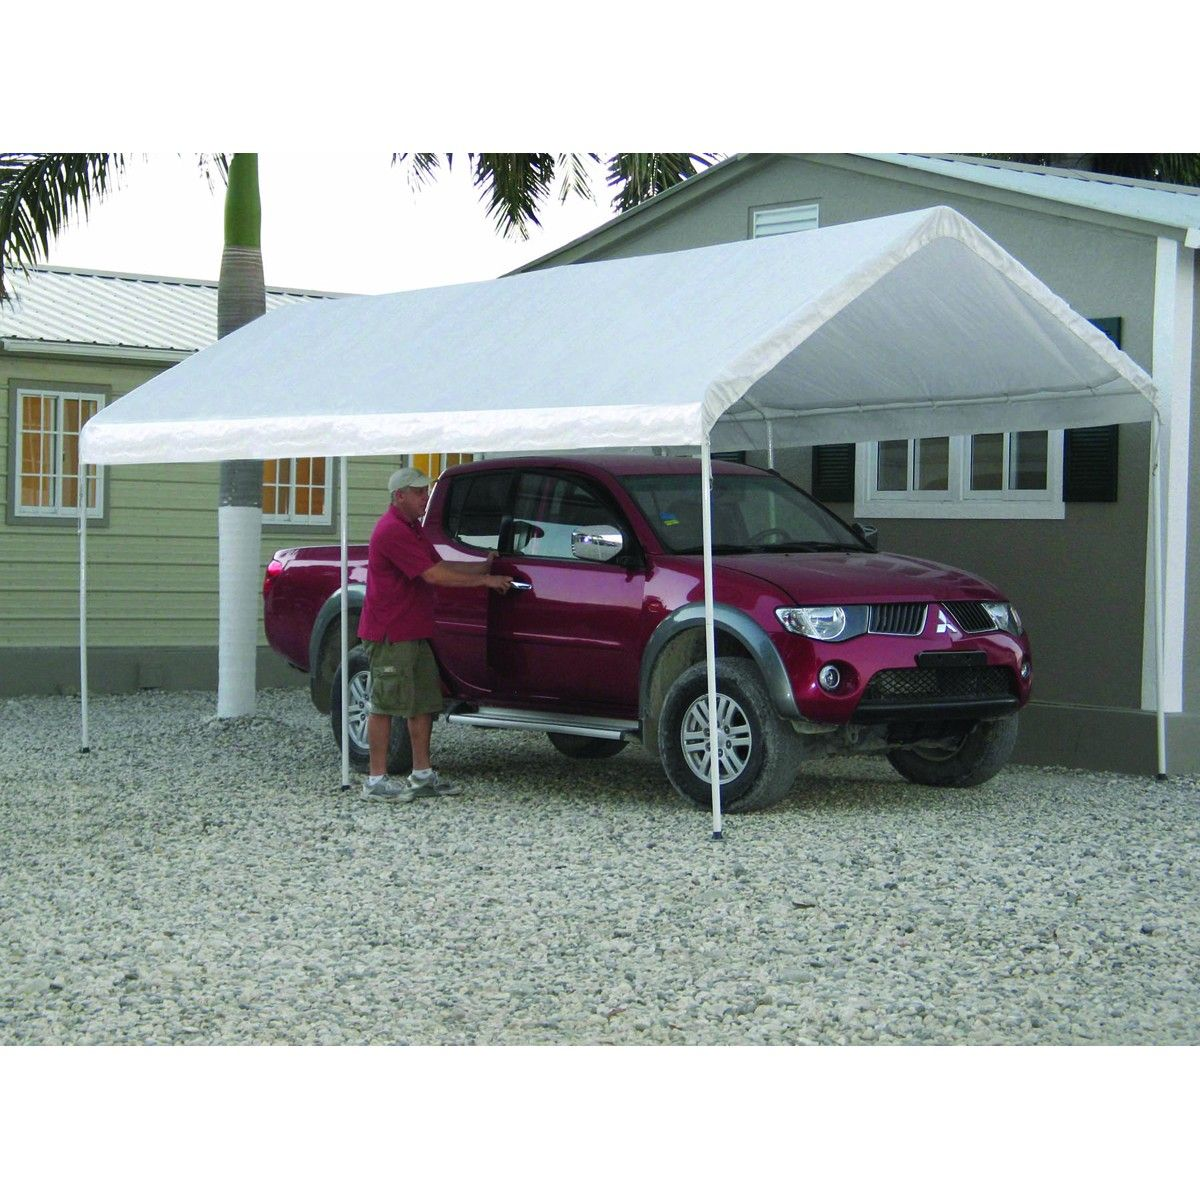 10 Ft. x 20 Ft. Portable Car Canopy | Canopy tent, Car ...